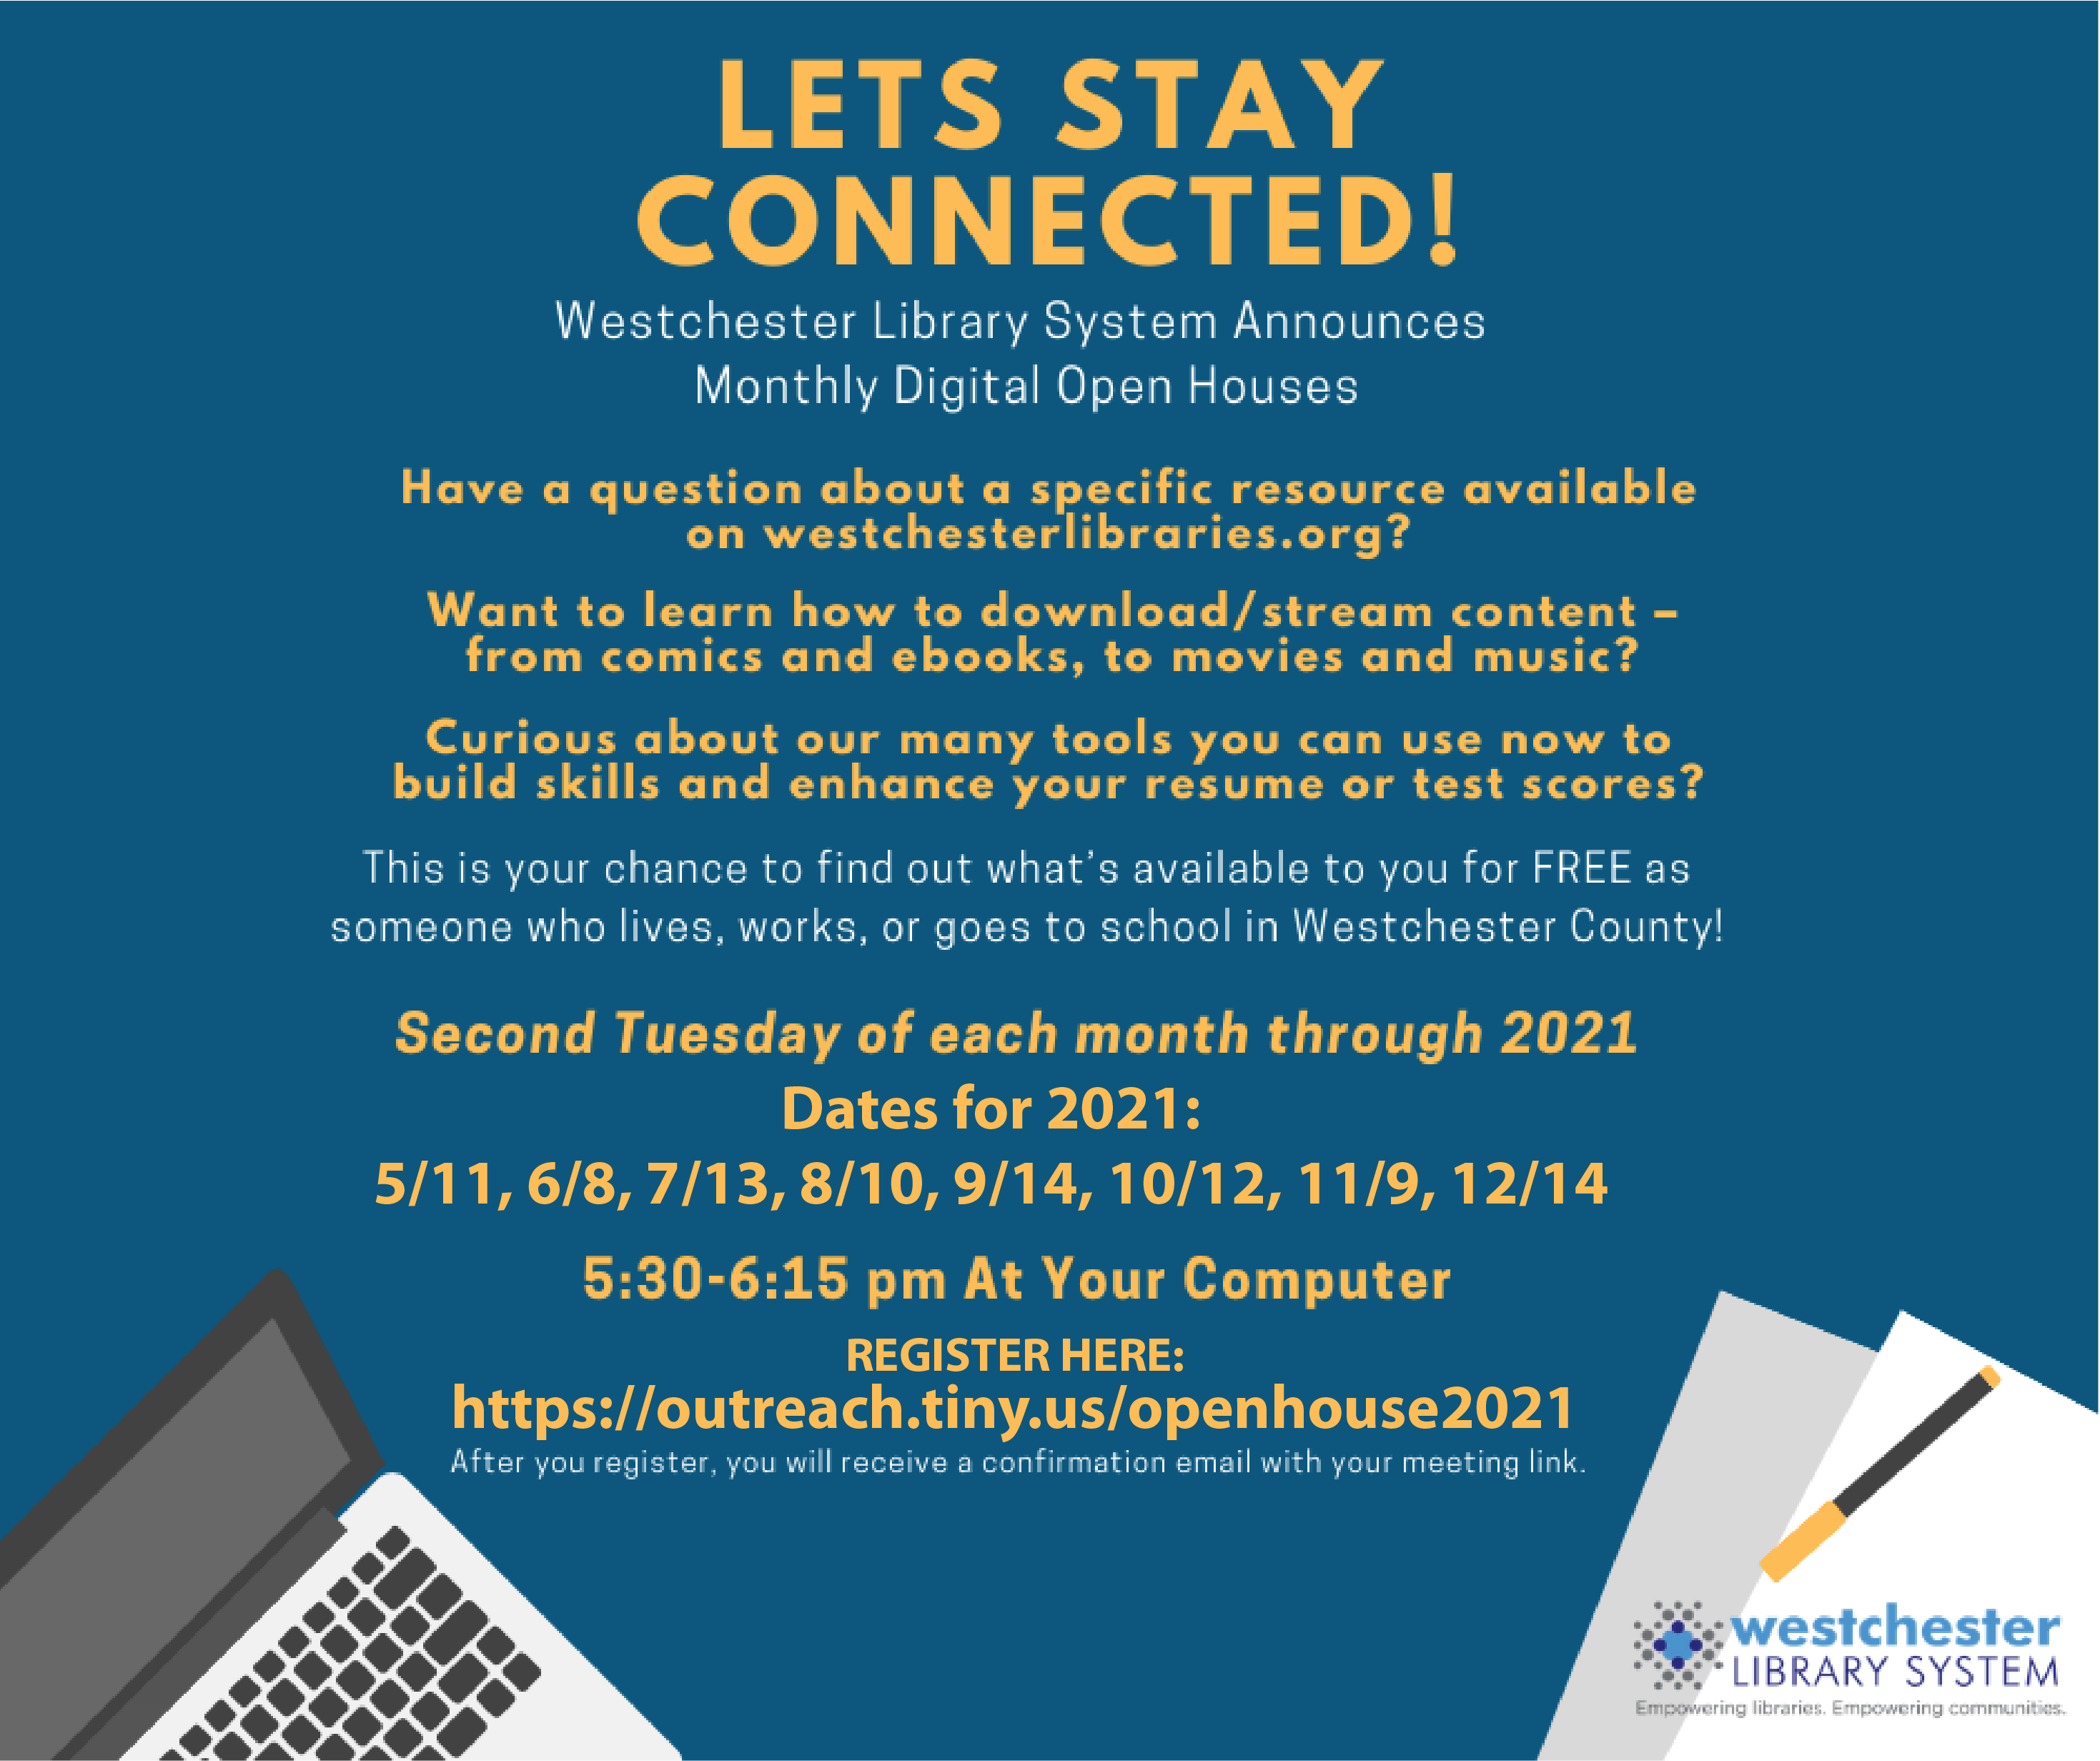 WLS monthly digital open house